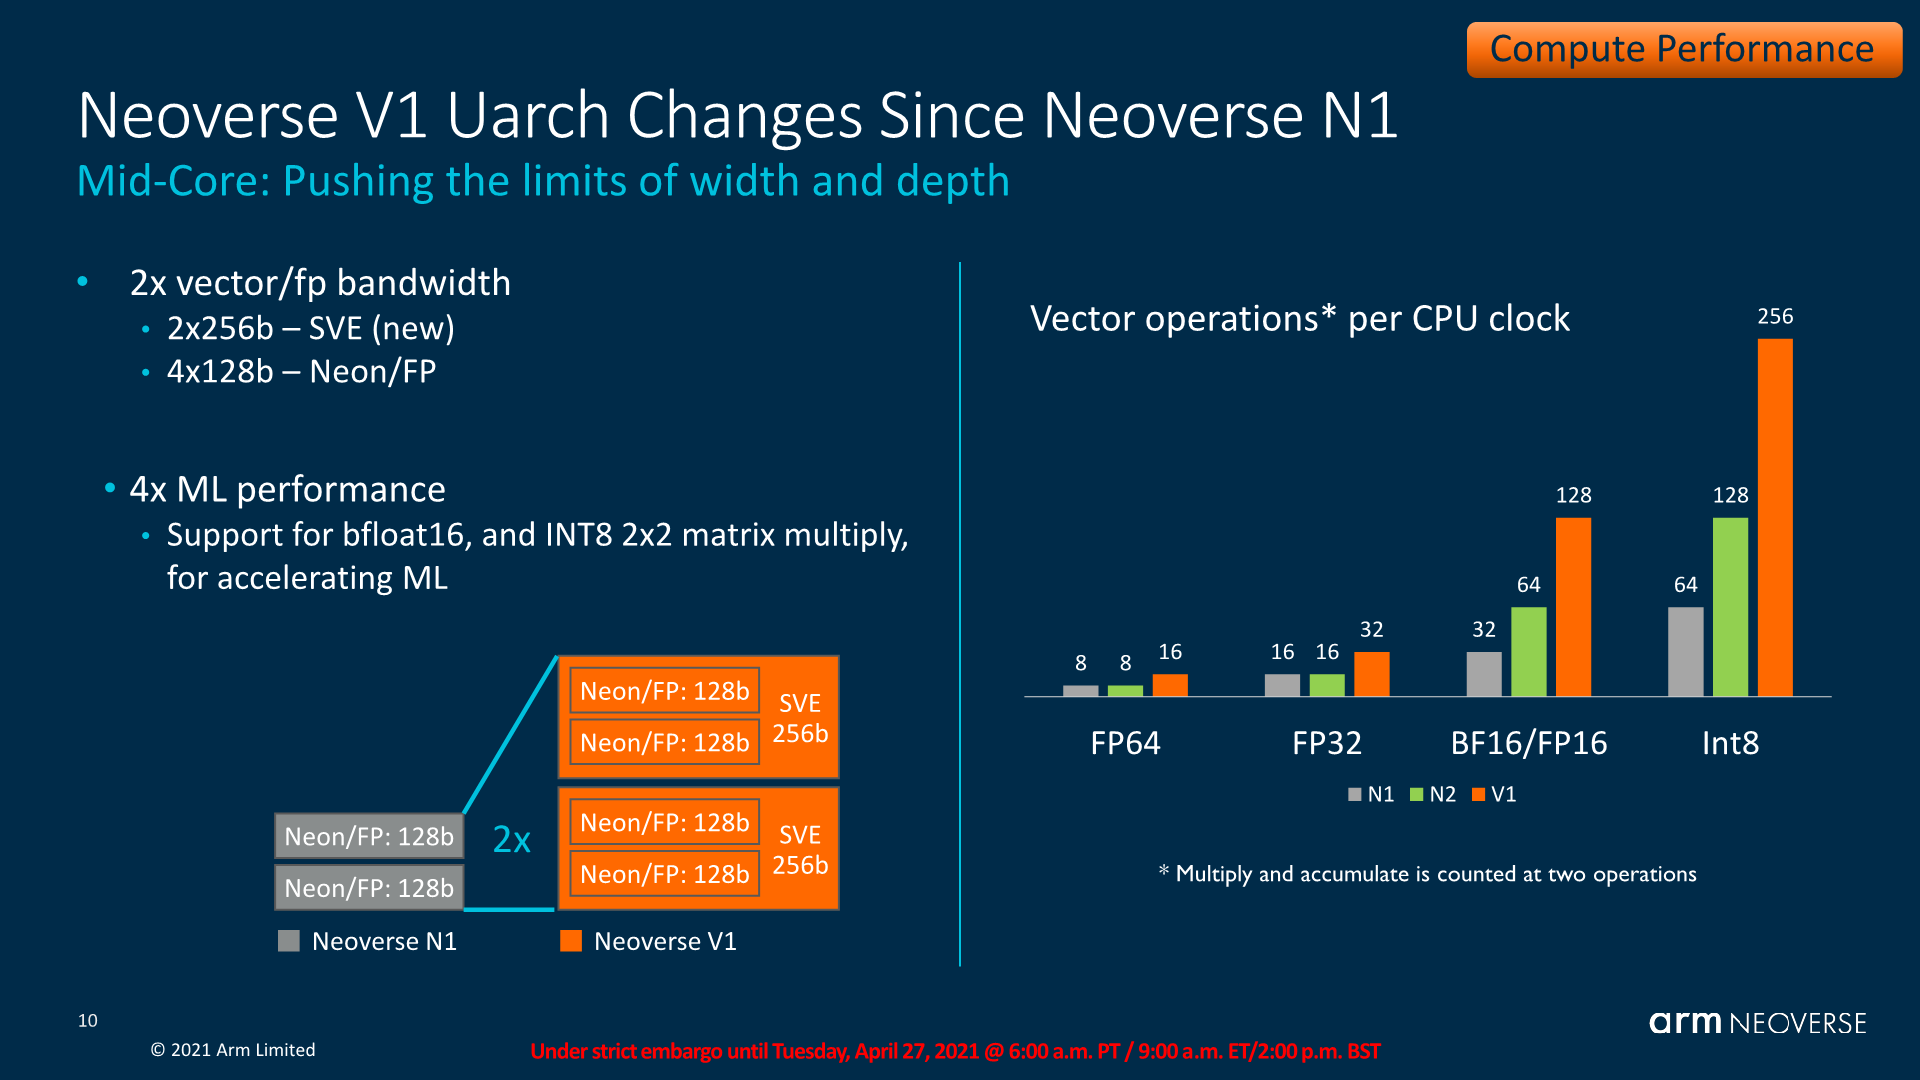 ARM Neoverse V1 08